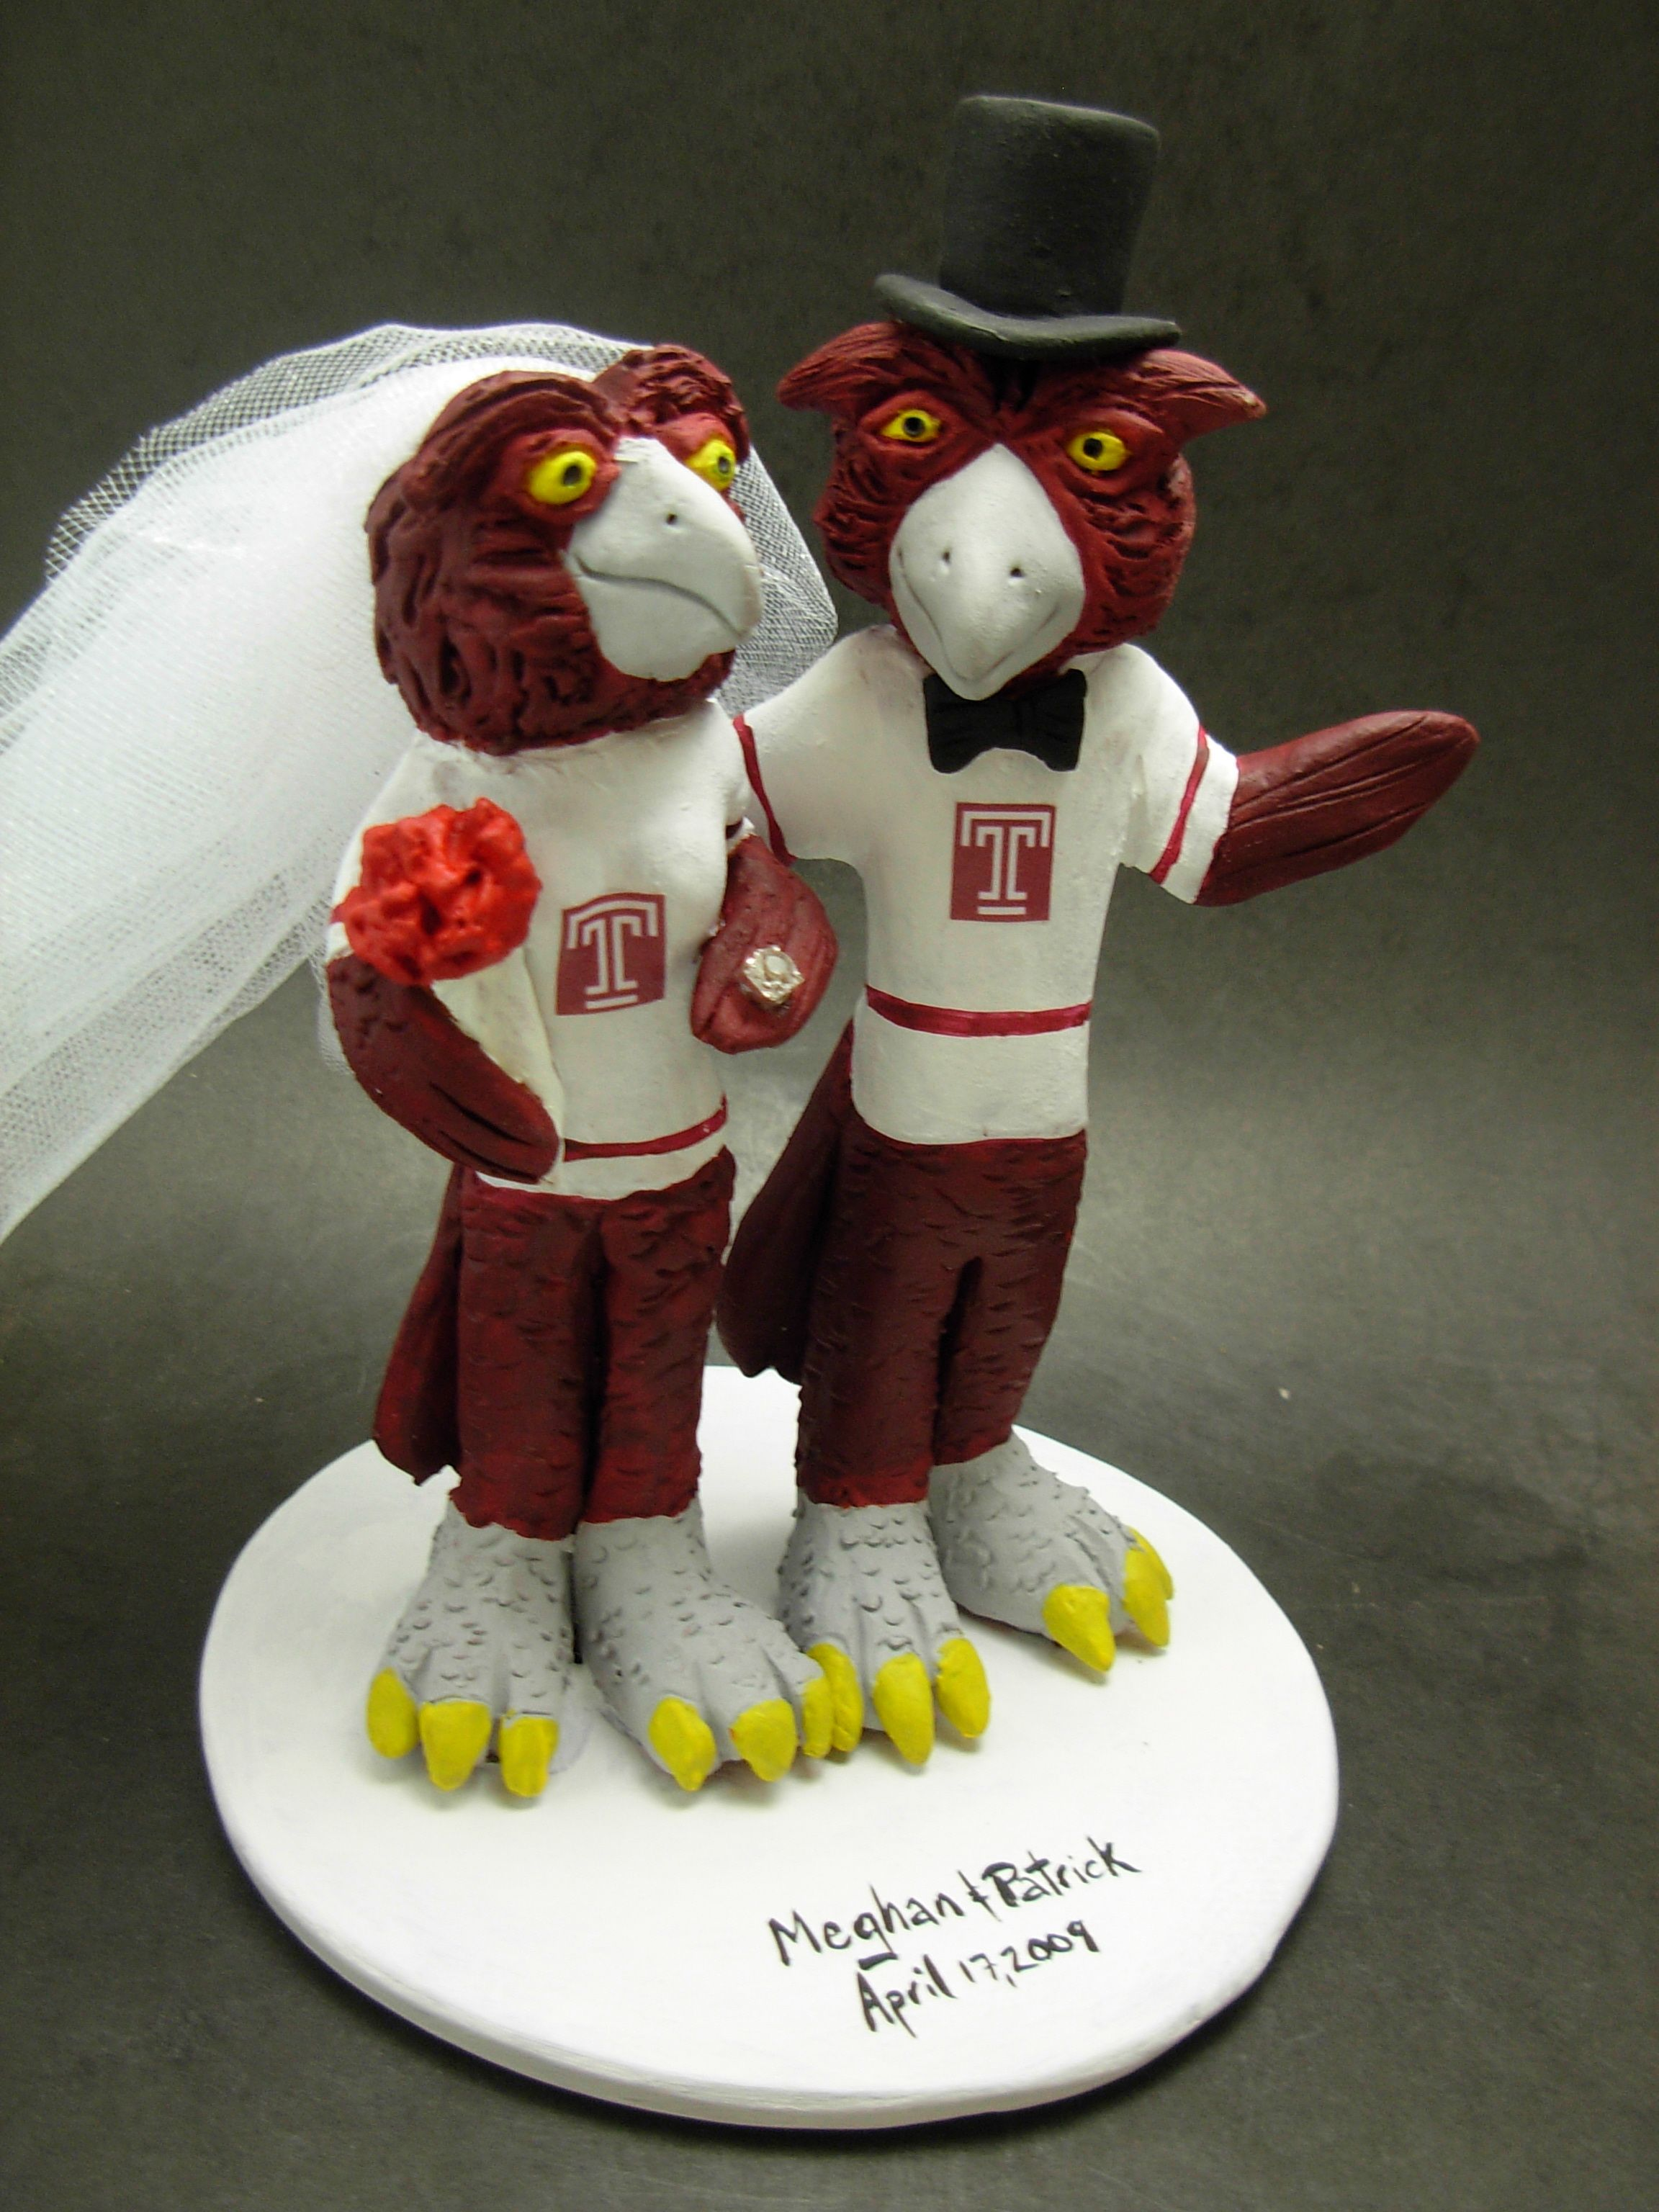 Custom made to order college mascot wedding cake toppers, individually hand sculpted of kiln fired clay. Incorporate your team jersey, sport, favourite items, whatever is important to the bride and groom. $235  www.magicmud.com 1 800 231 9814 magicmud@magicmud... blog.magicmud.com twitter.com/... $235 #mascot #collegemascot #hokie #ms.wuf #gators #virginiatech #football mascot #wedding #cake #toppers #custom #personalized #Groom #bride #anniversary #birthday #weddingcaketoppers #caketoppers…